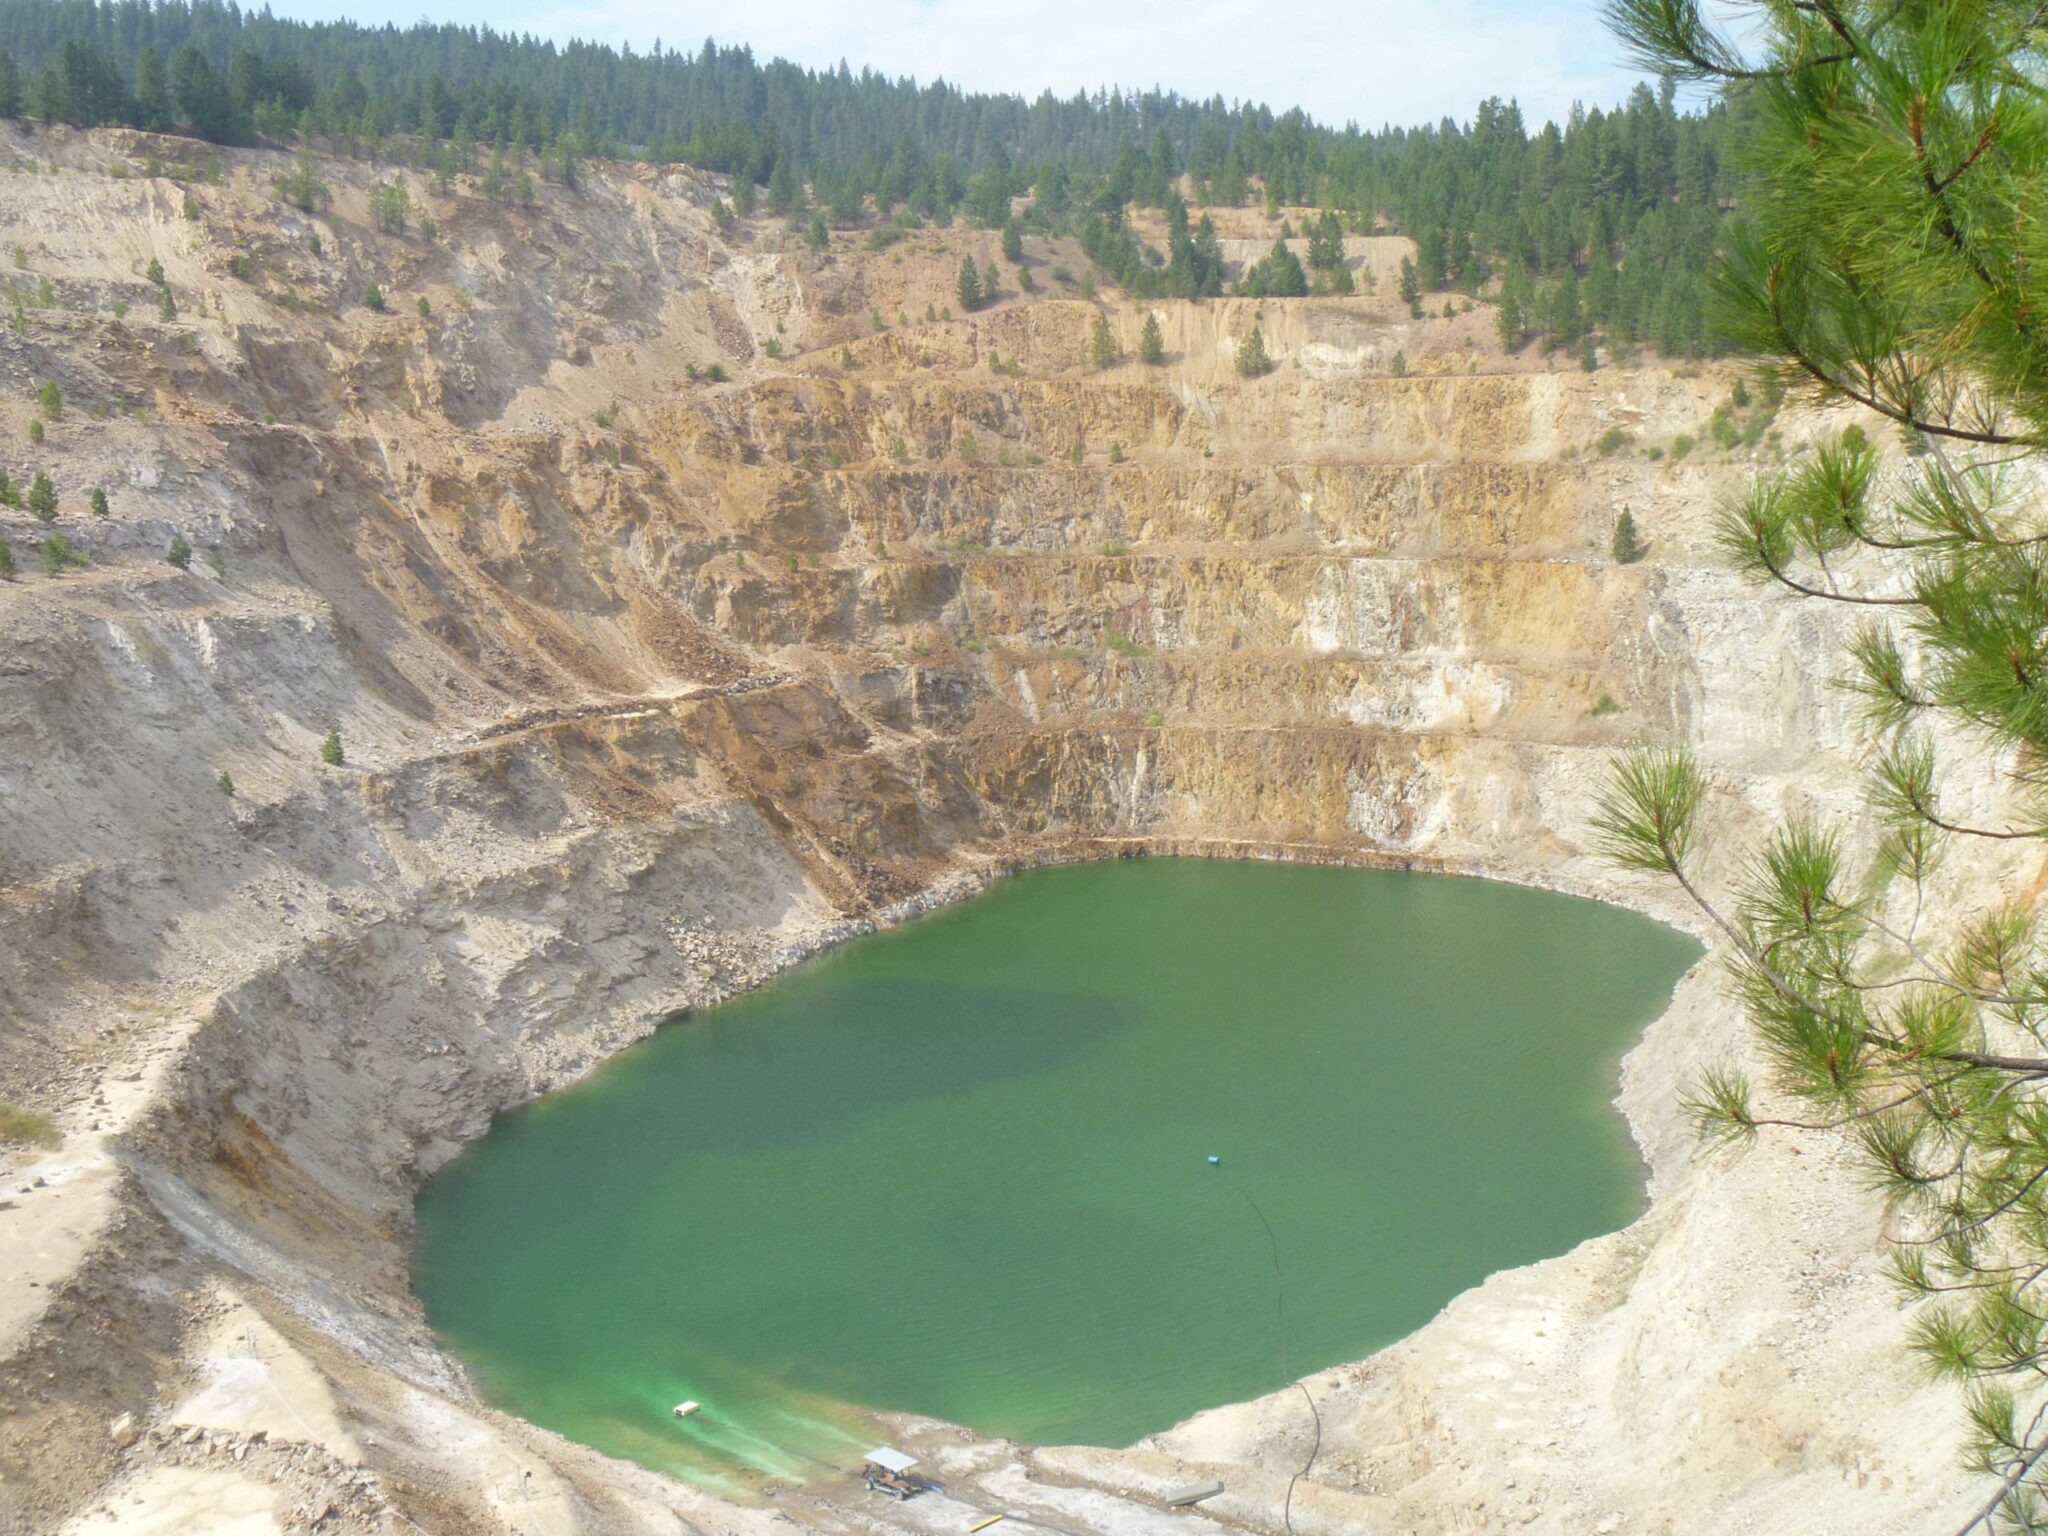 A tan and white mine with green-blue water at the bottom.